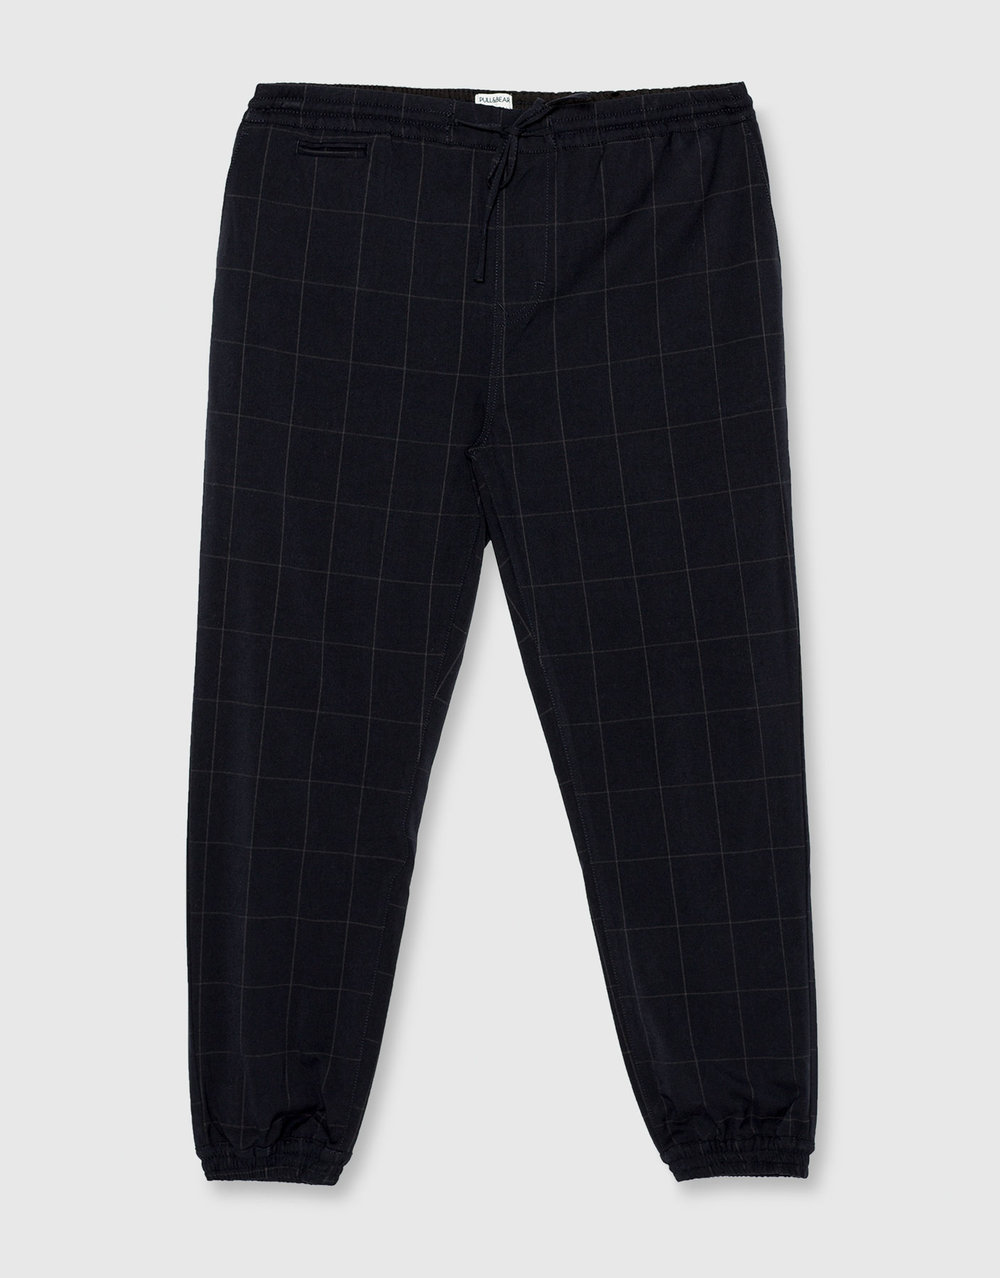 Check beach trousers, £25.99 (pullandbear.com)